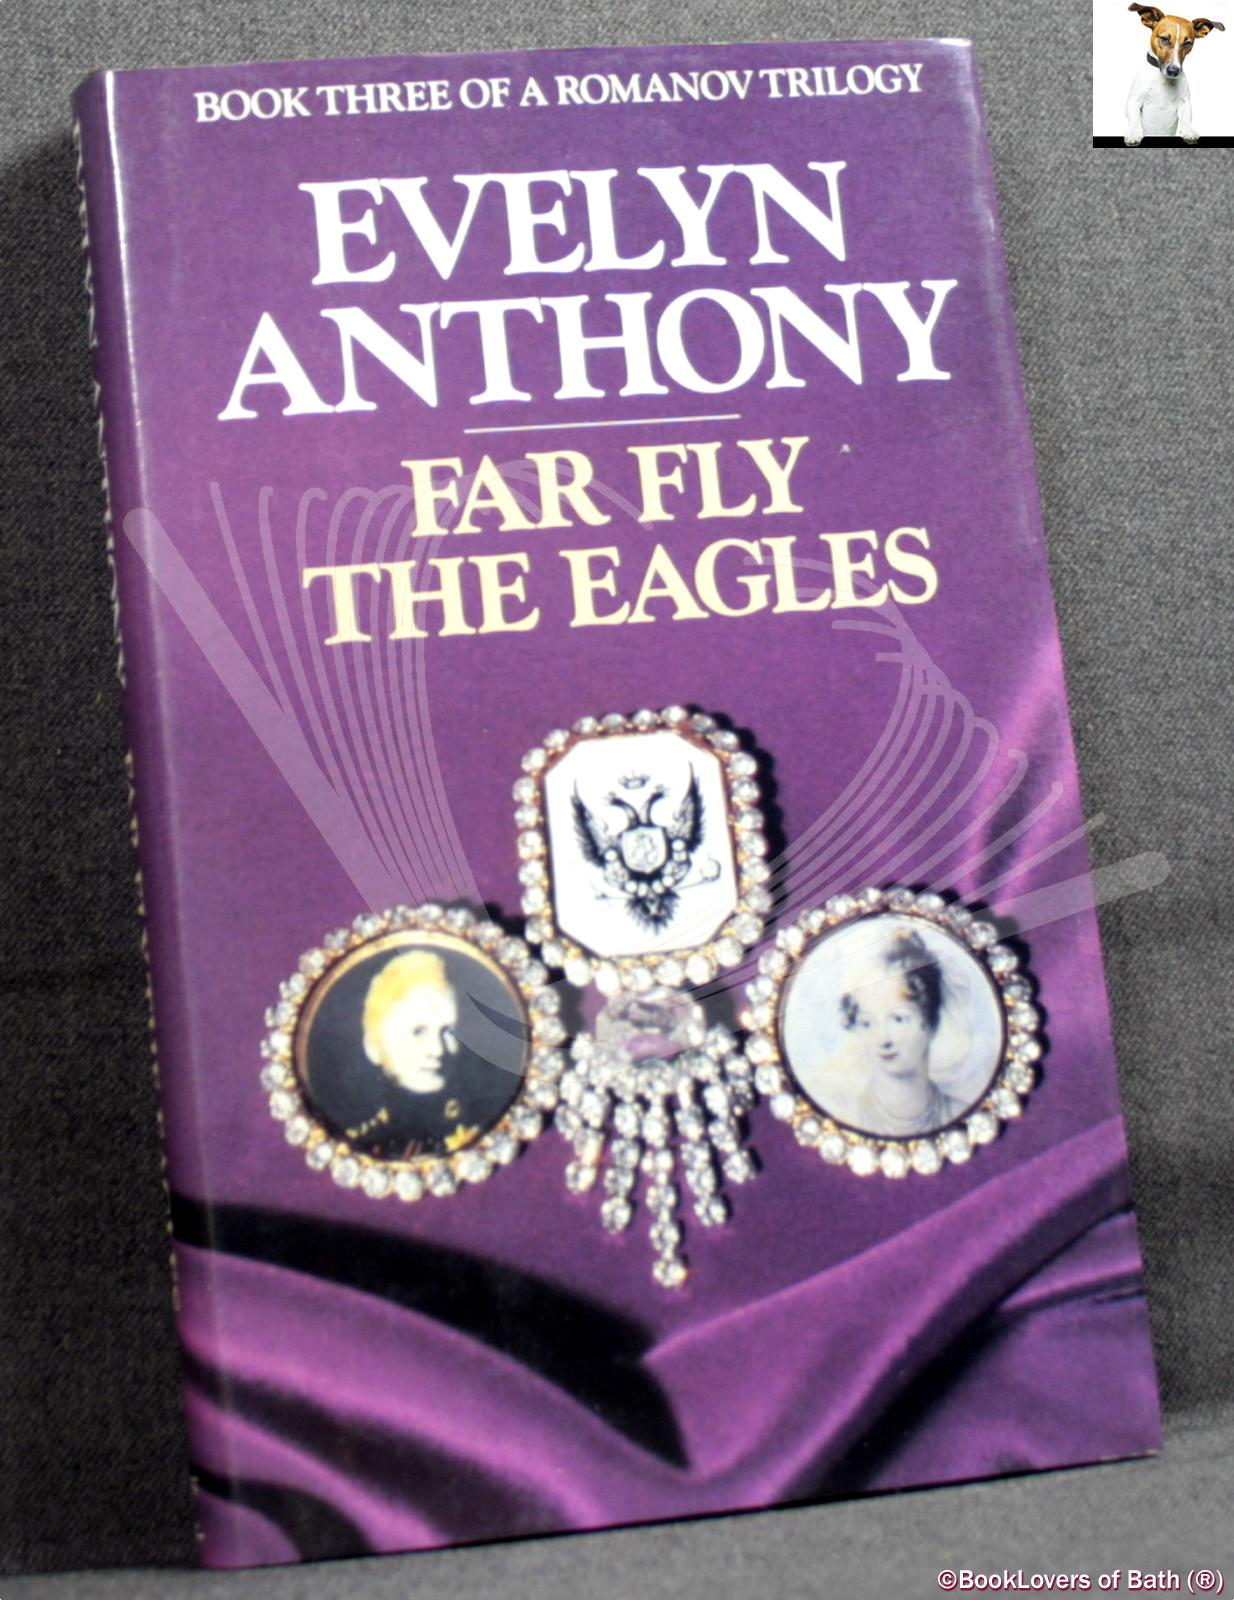 Far Fly the Eagles - Evelyn Anthony